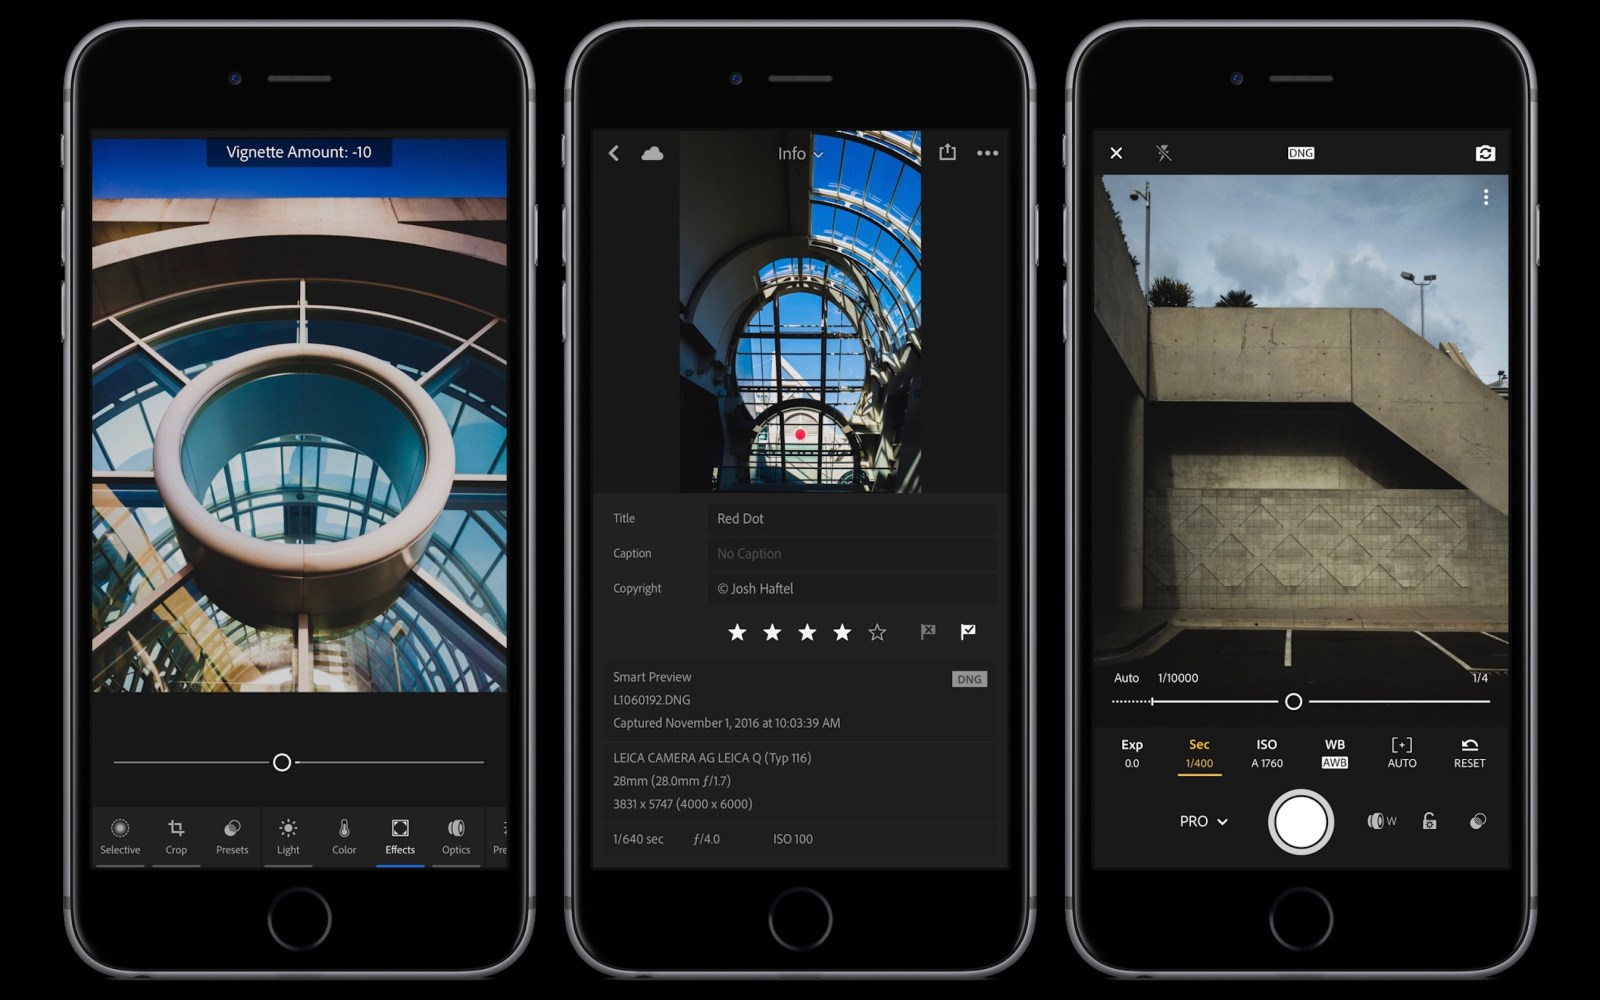 Adobe Lightroom for iOS gains improved editing interface, new info screen, pro mode, more